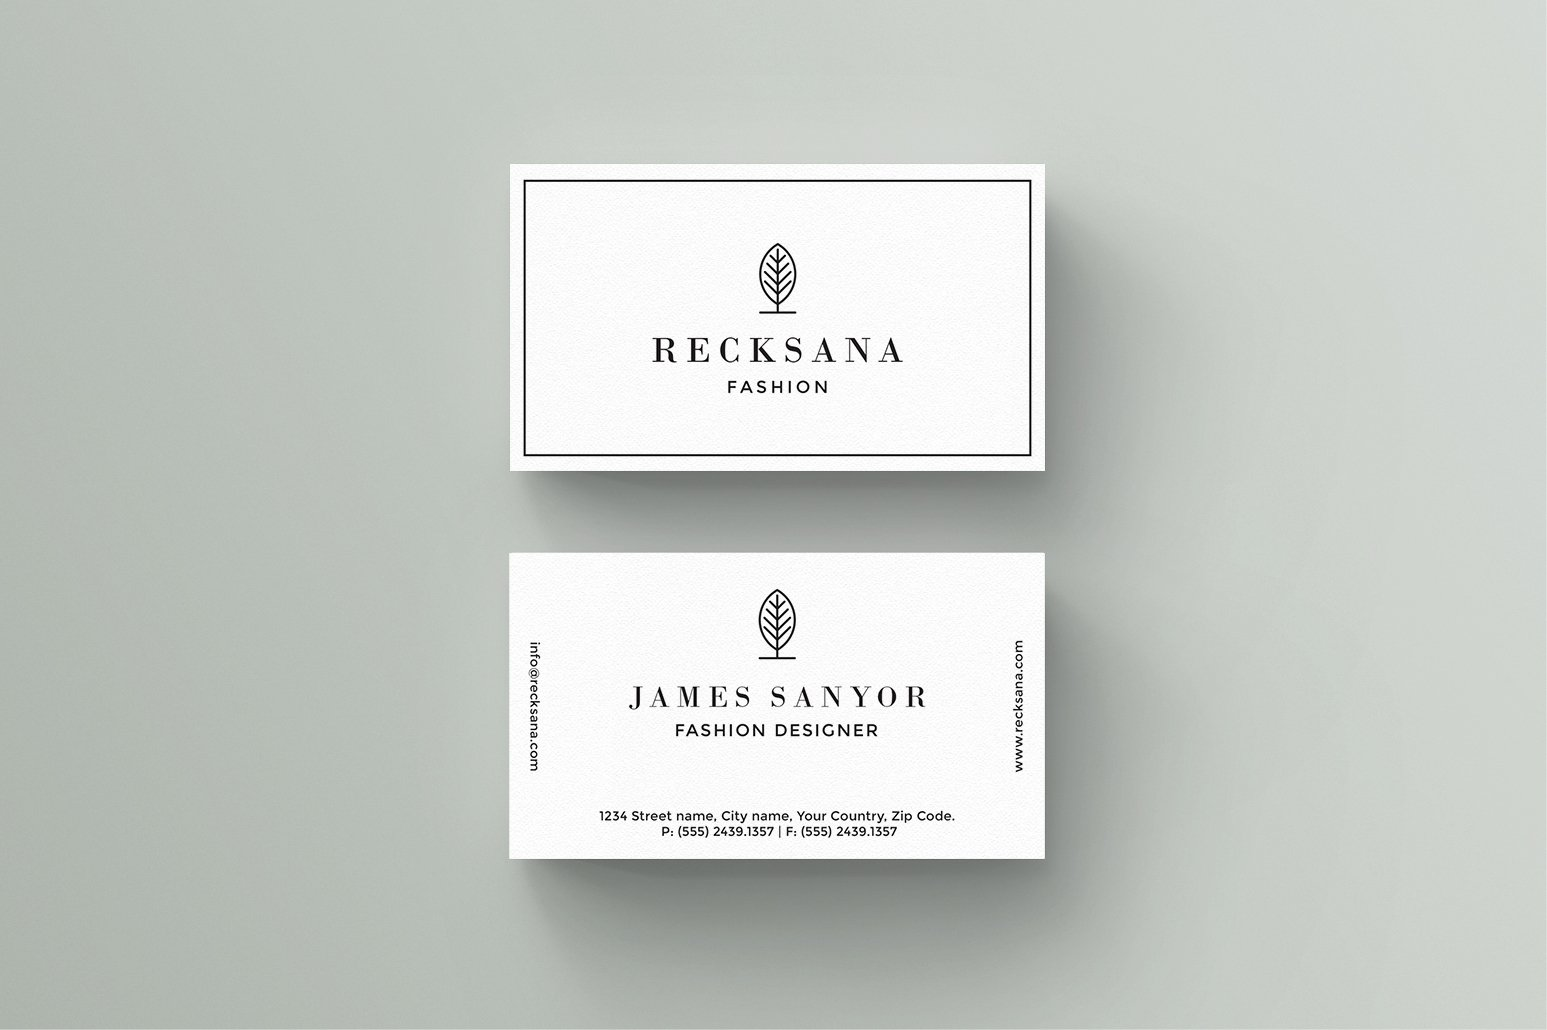 J U N I P E R Business Card Template Business Card Templates - Business card template pages